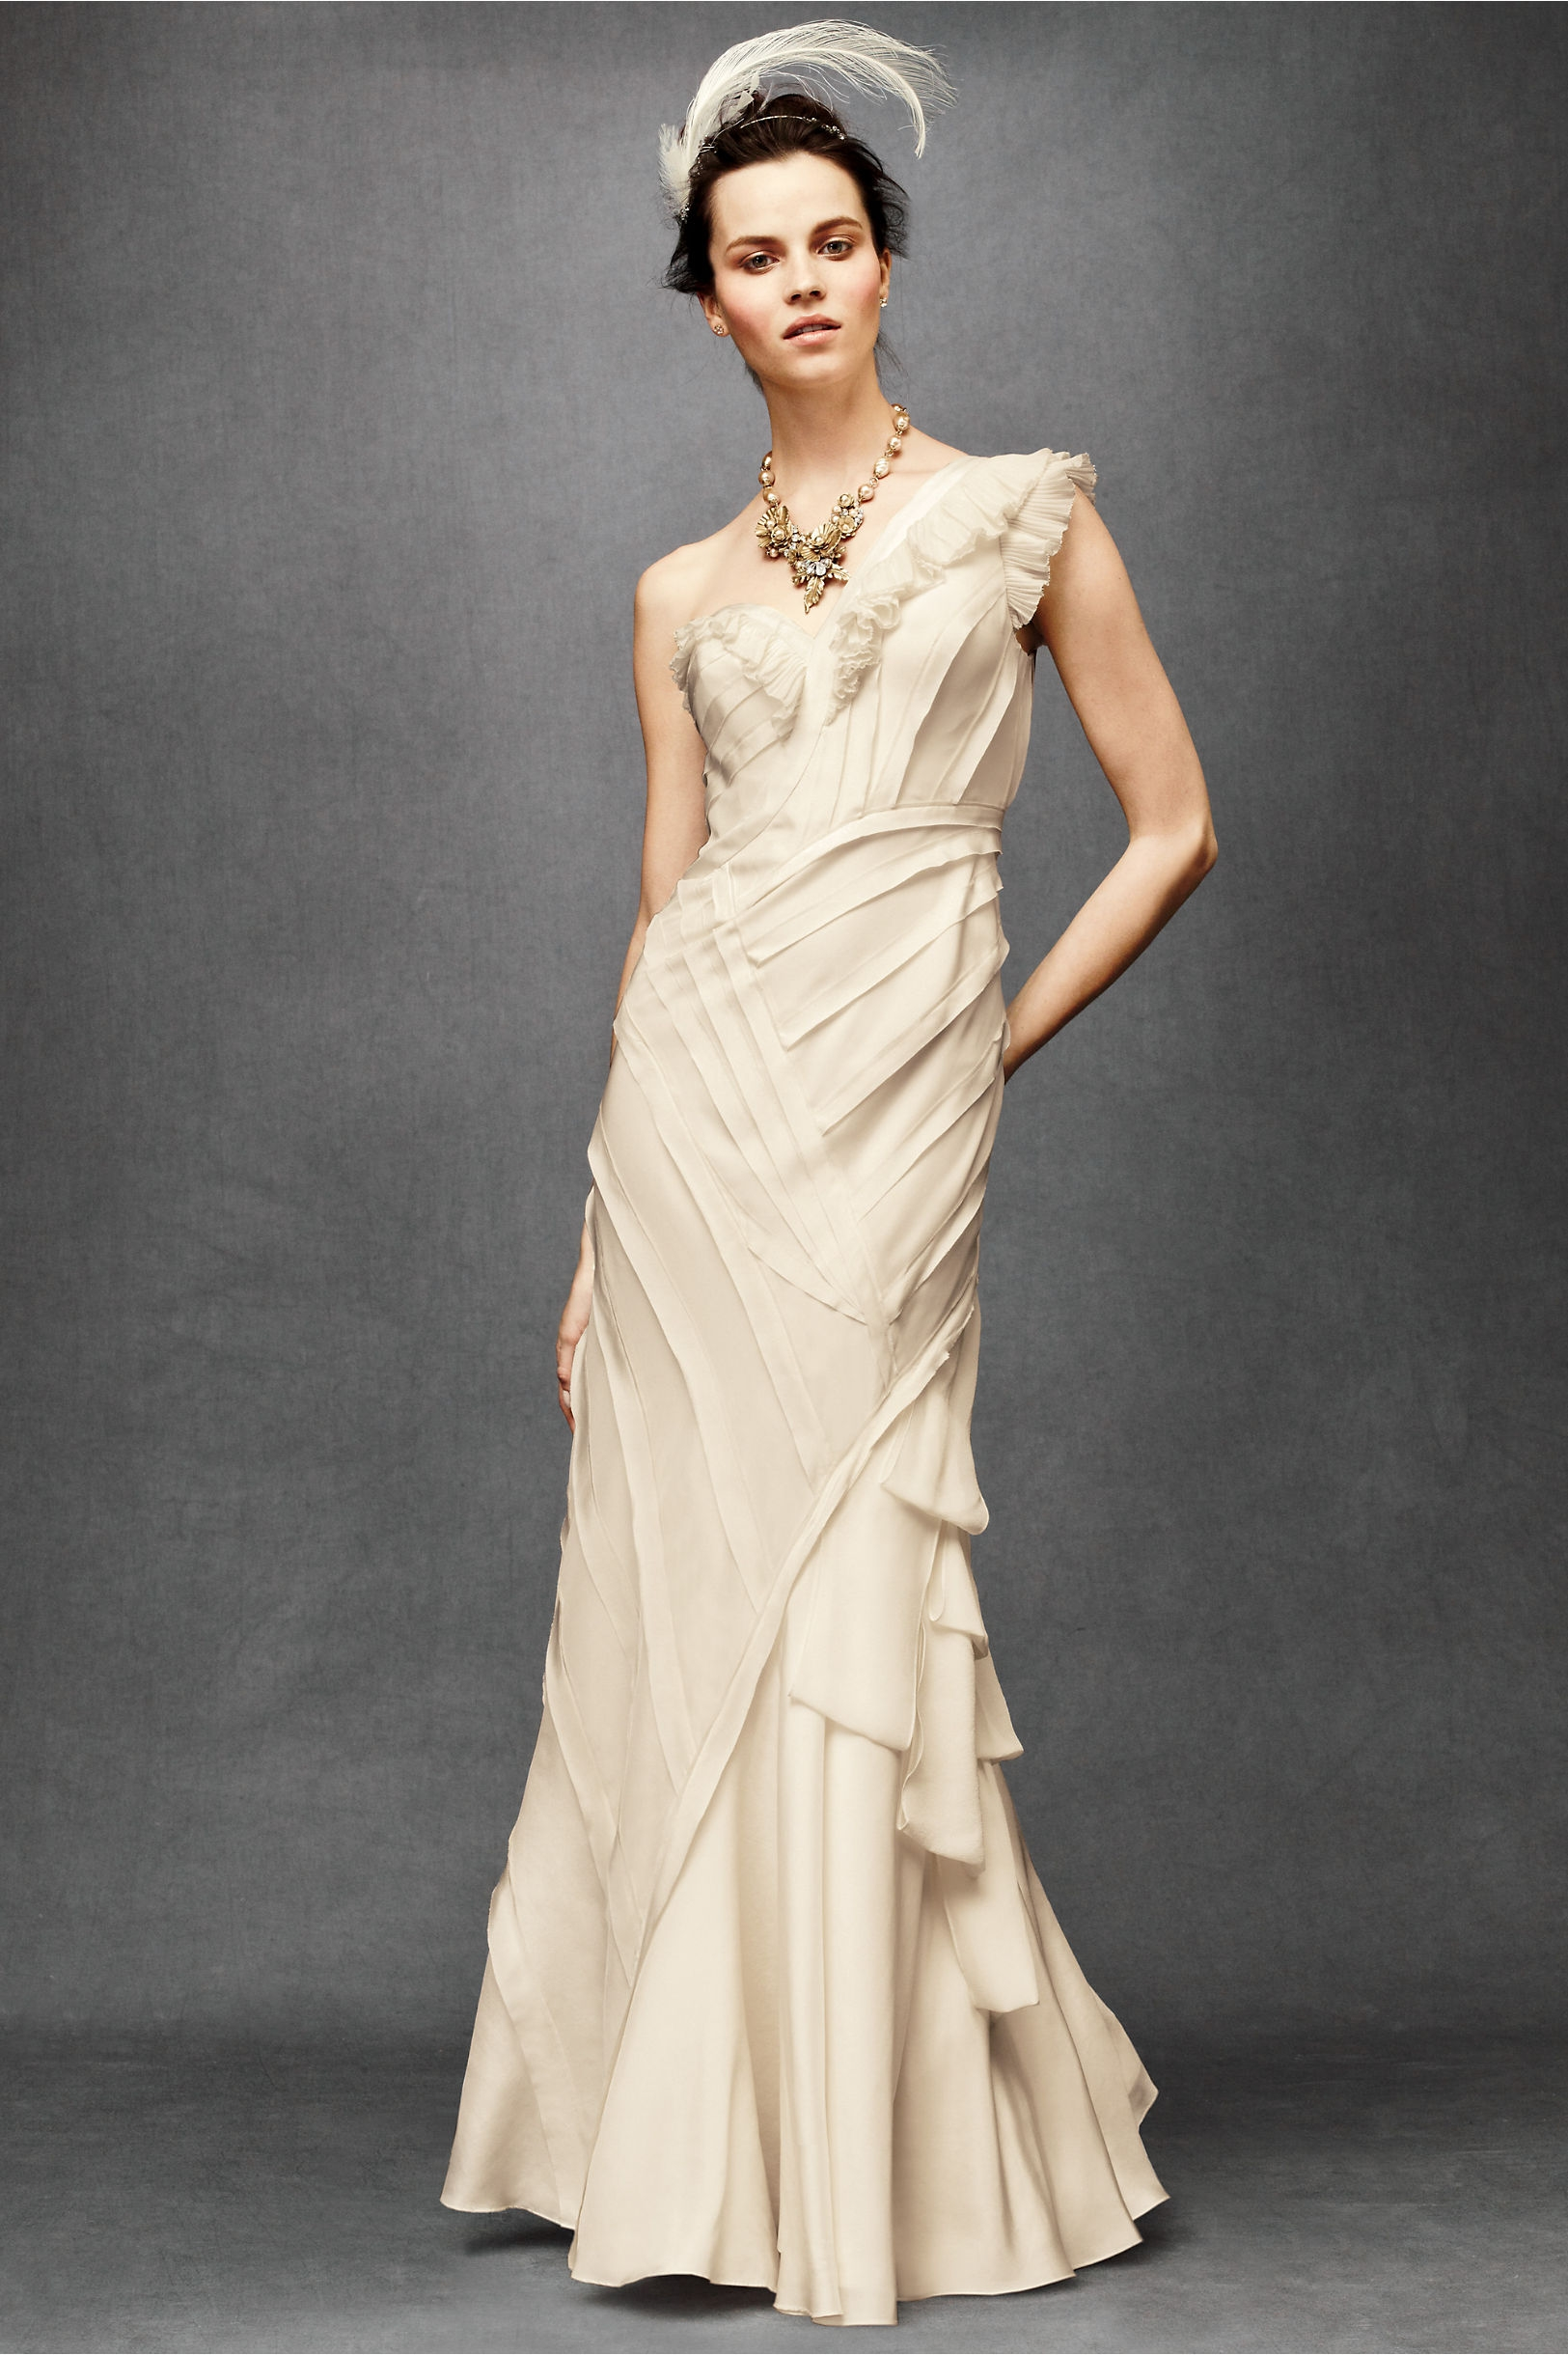 Ribboned-silk-wedding-dress-2011-bhldn-ivory-one-shoulder.original